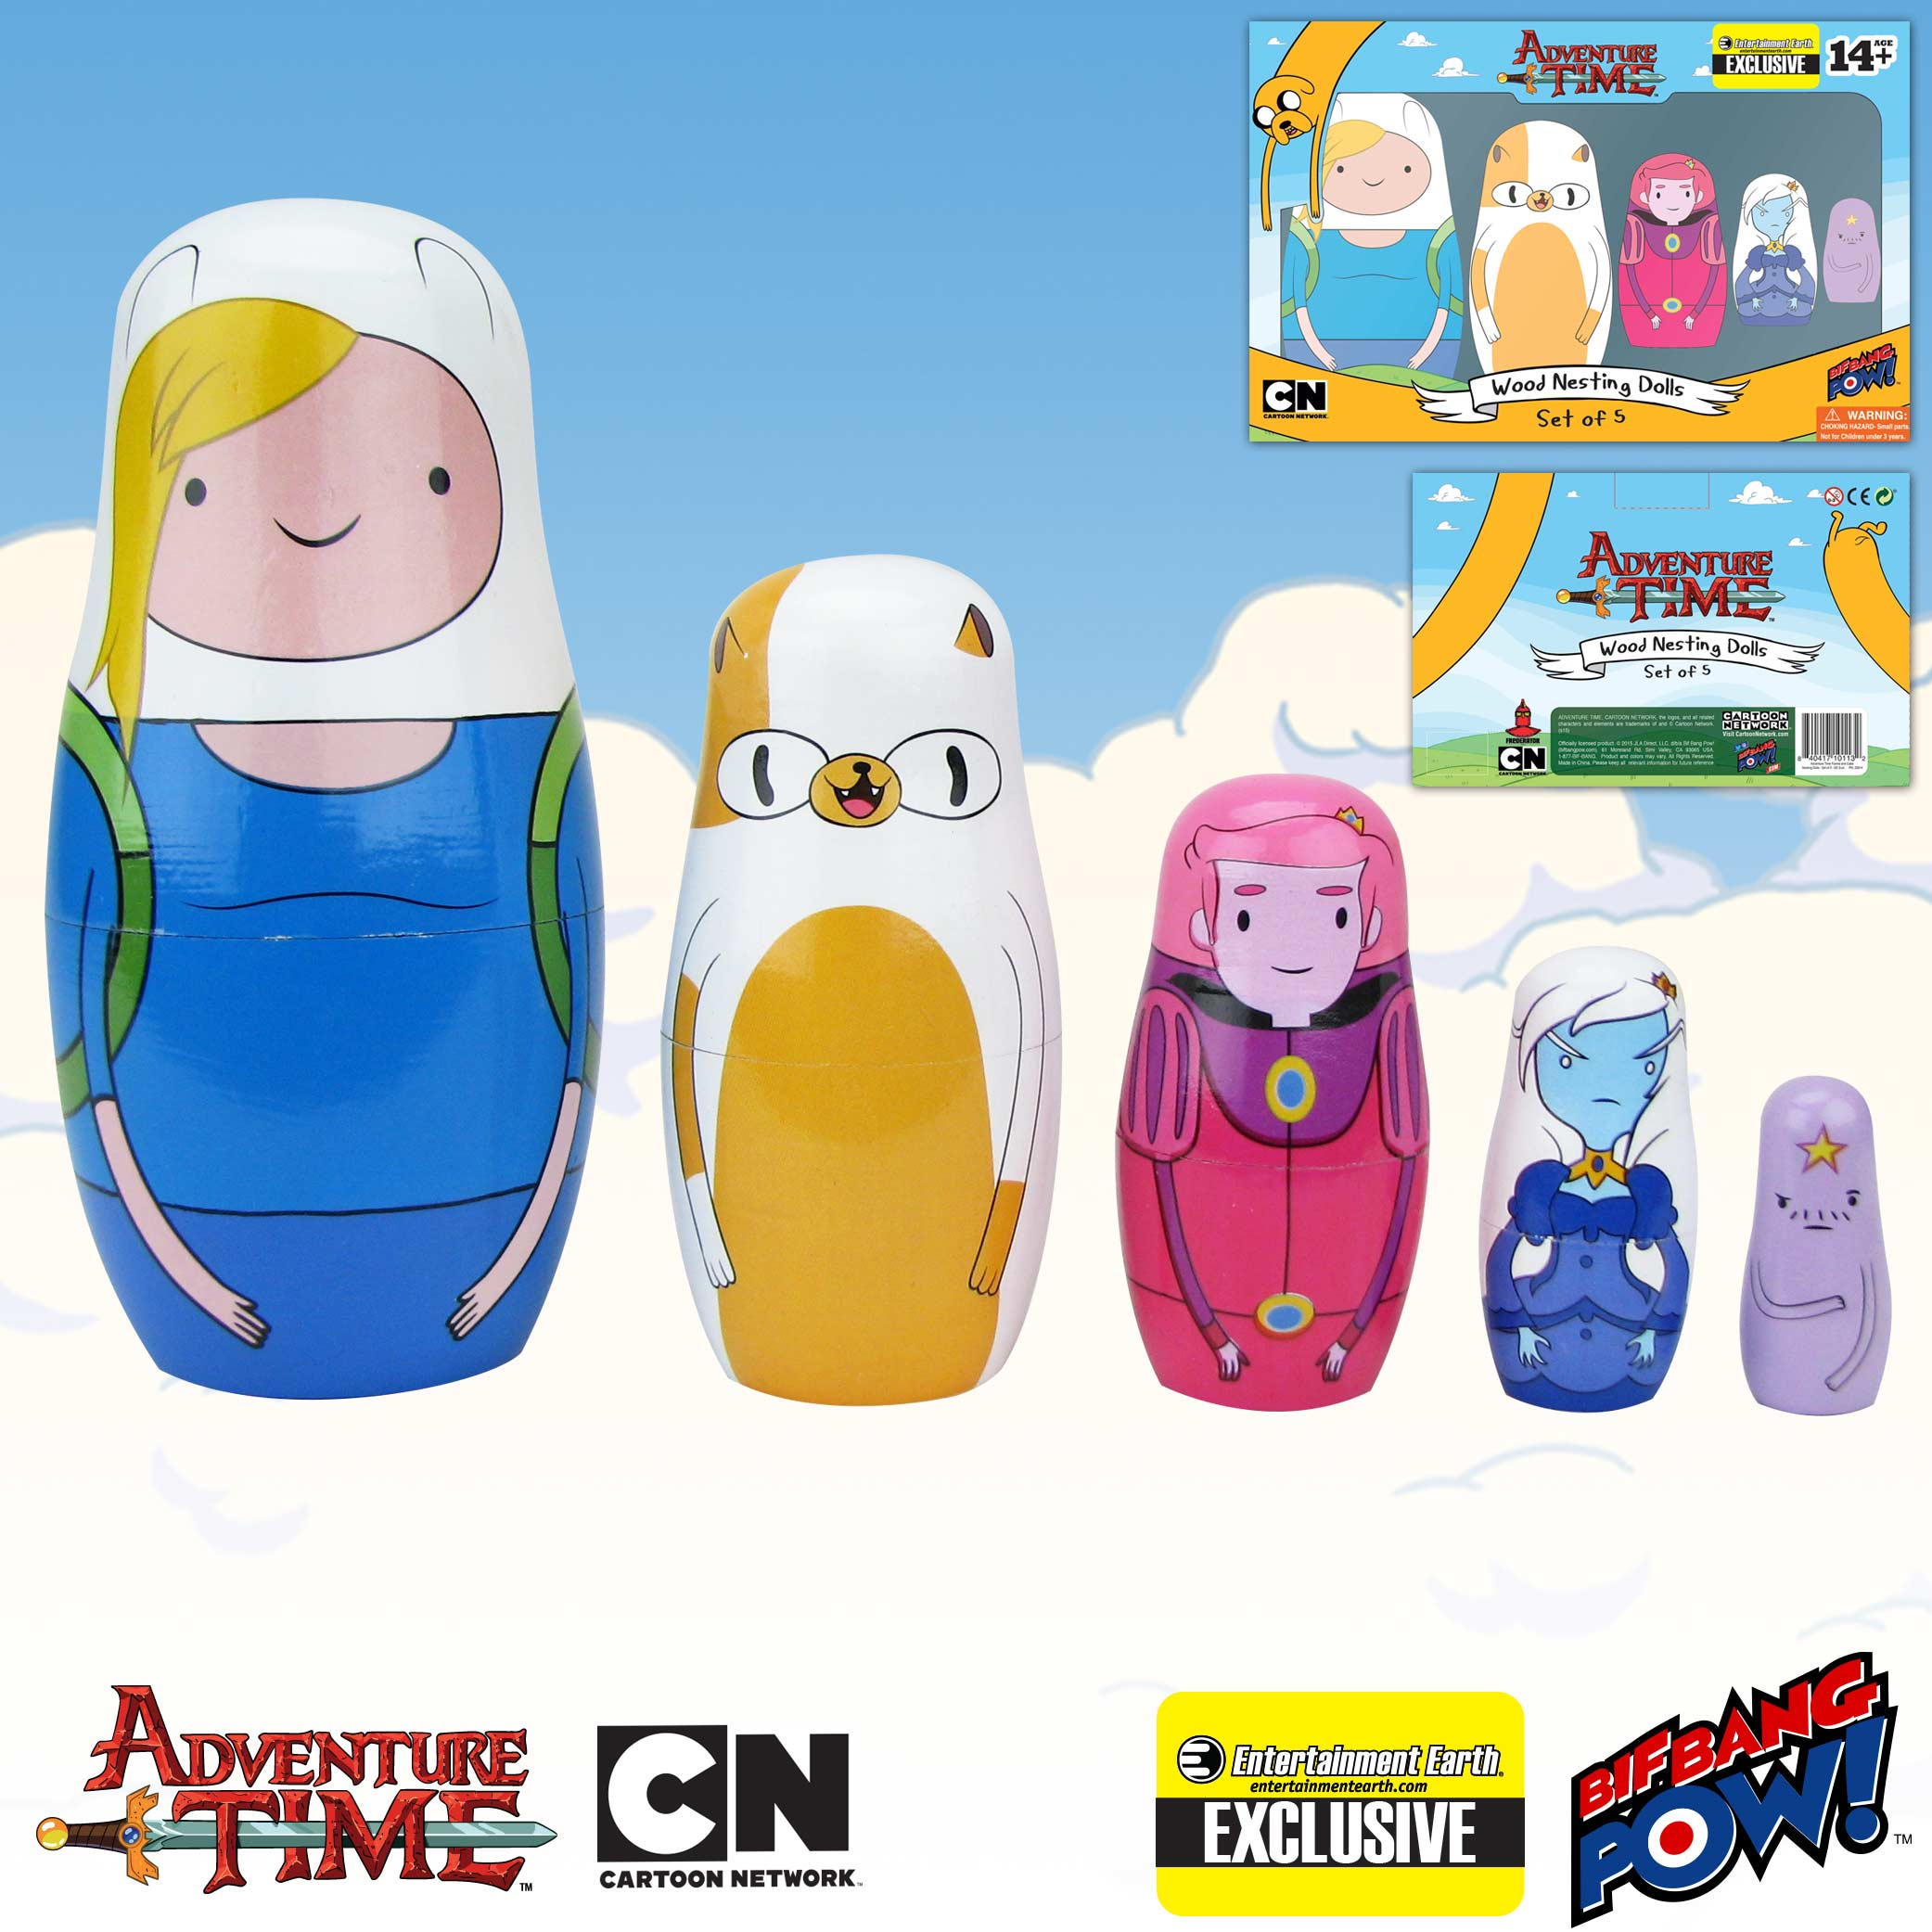 Adventure Time Fionna and Cake Nesting Dolls